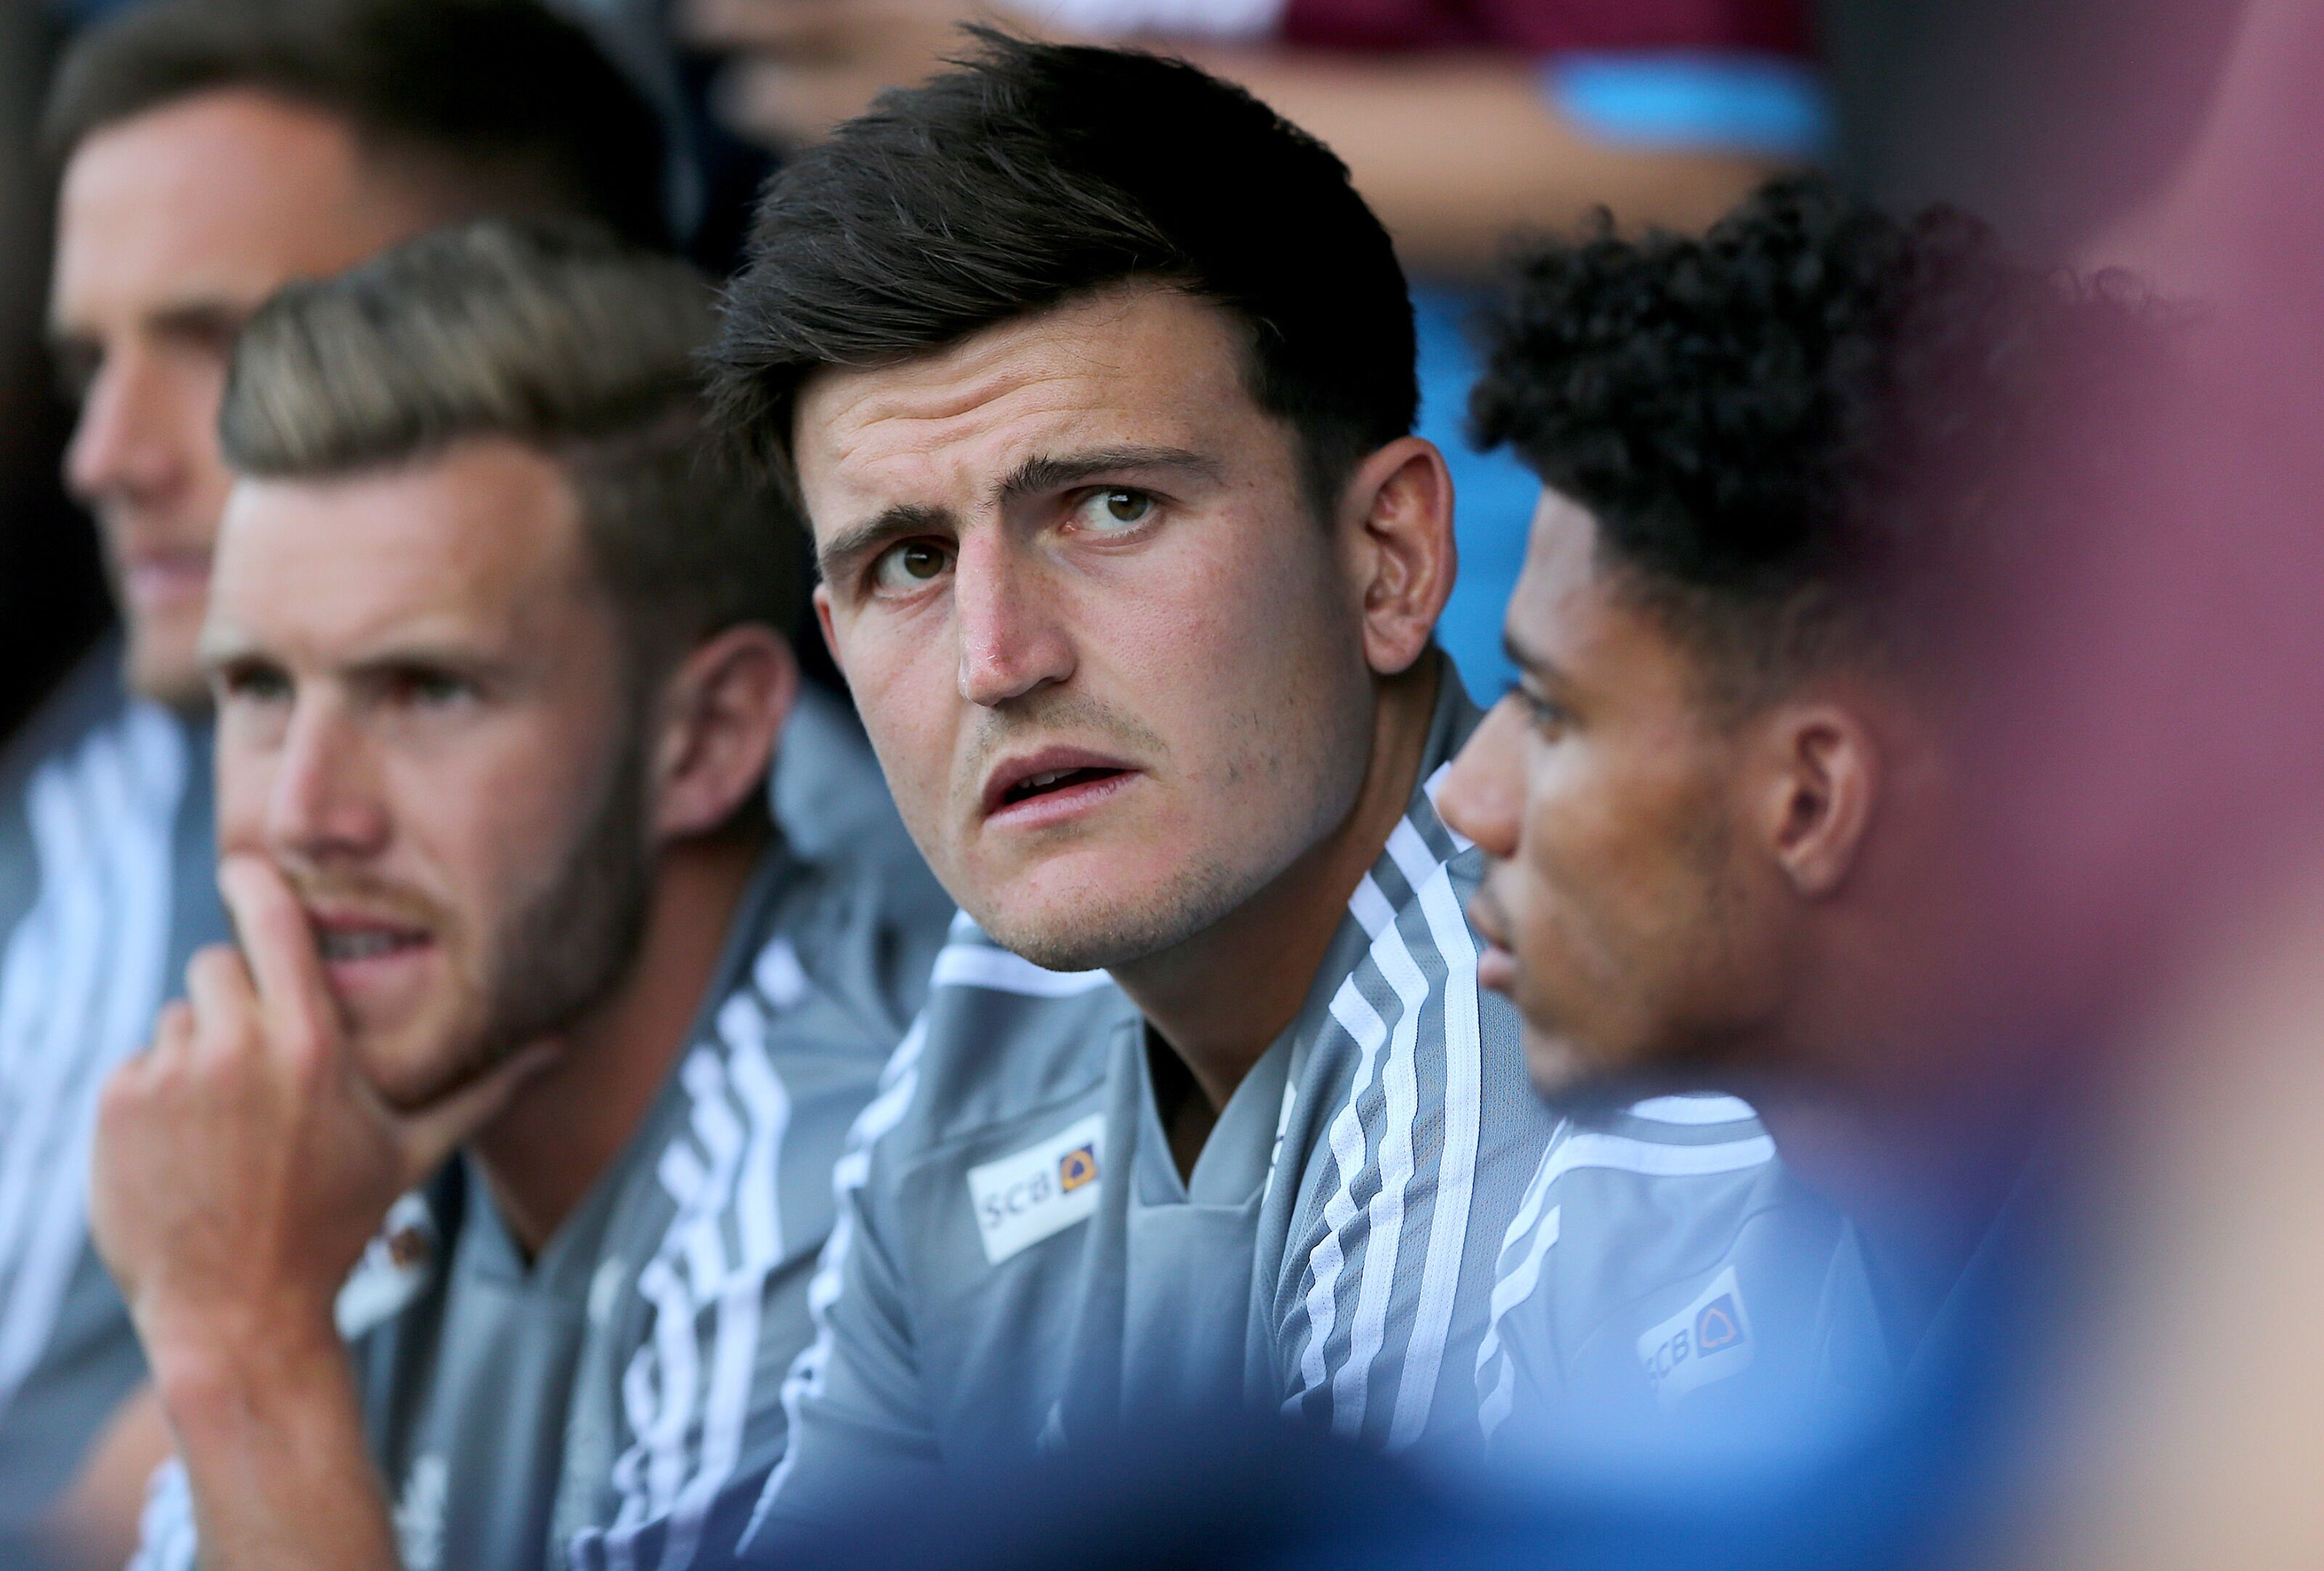 Harry Maguire doesn't think he's worth £80 million